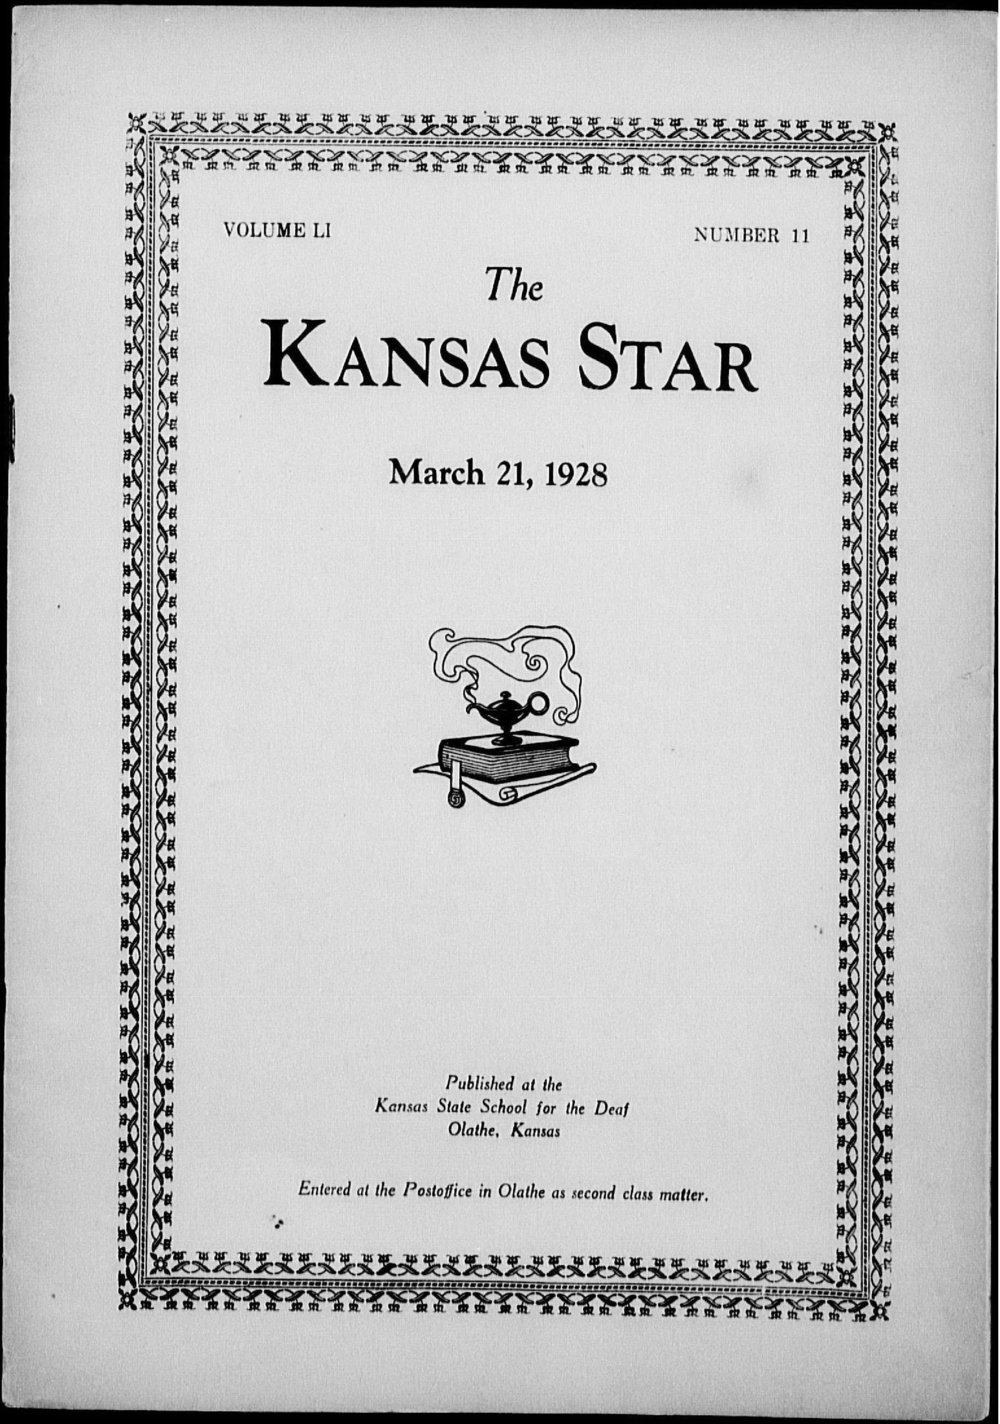 The Kansas Star, volume 51, number 11 - Front cover